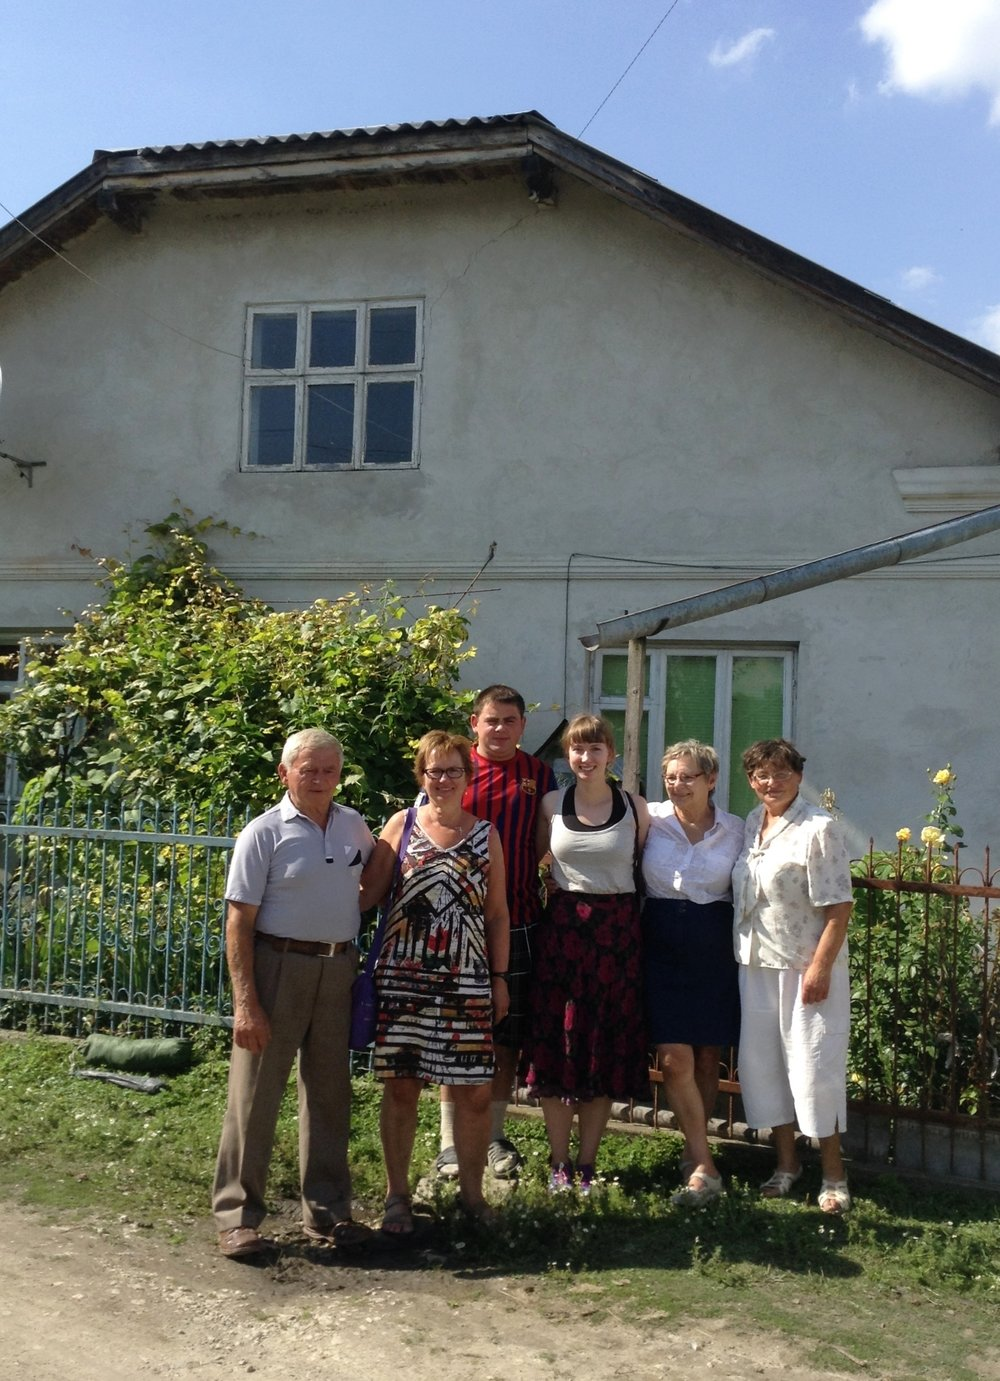 Mykhailo, my mom, Ivan, me, my mom's cousin Shirley, and Hanna.